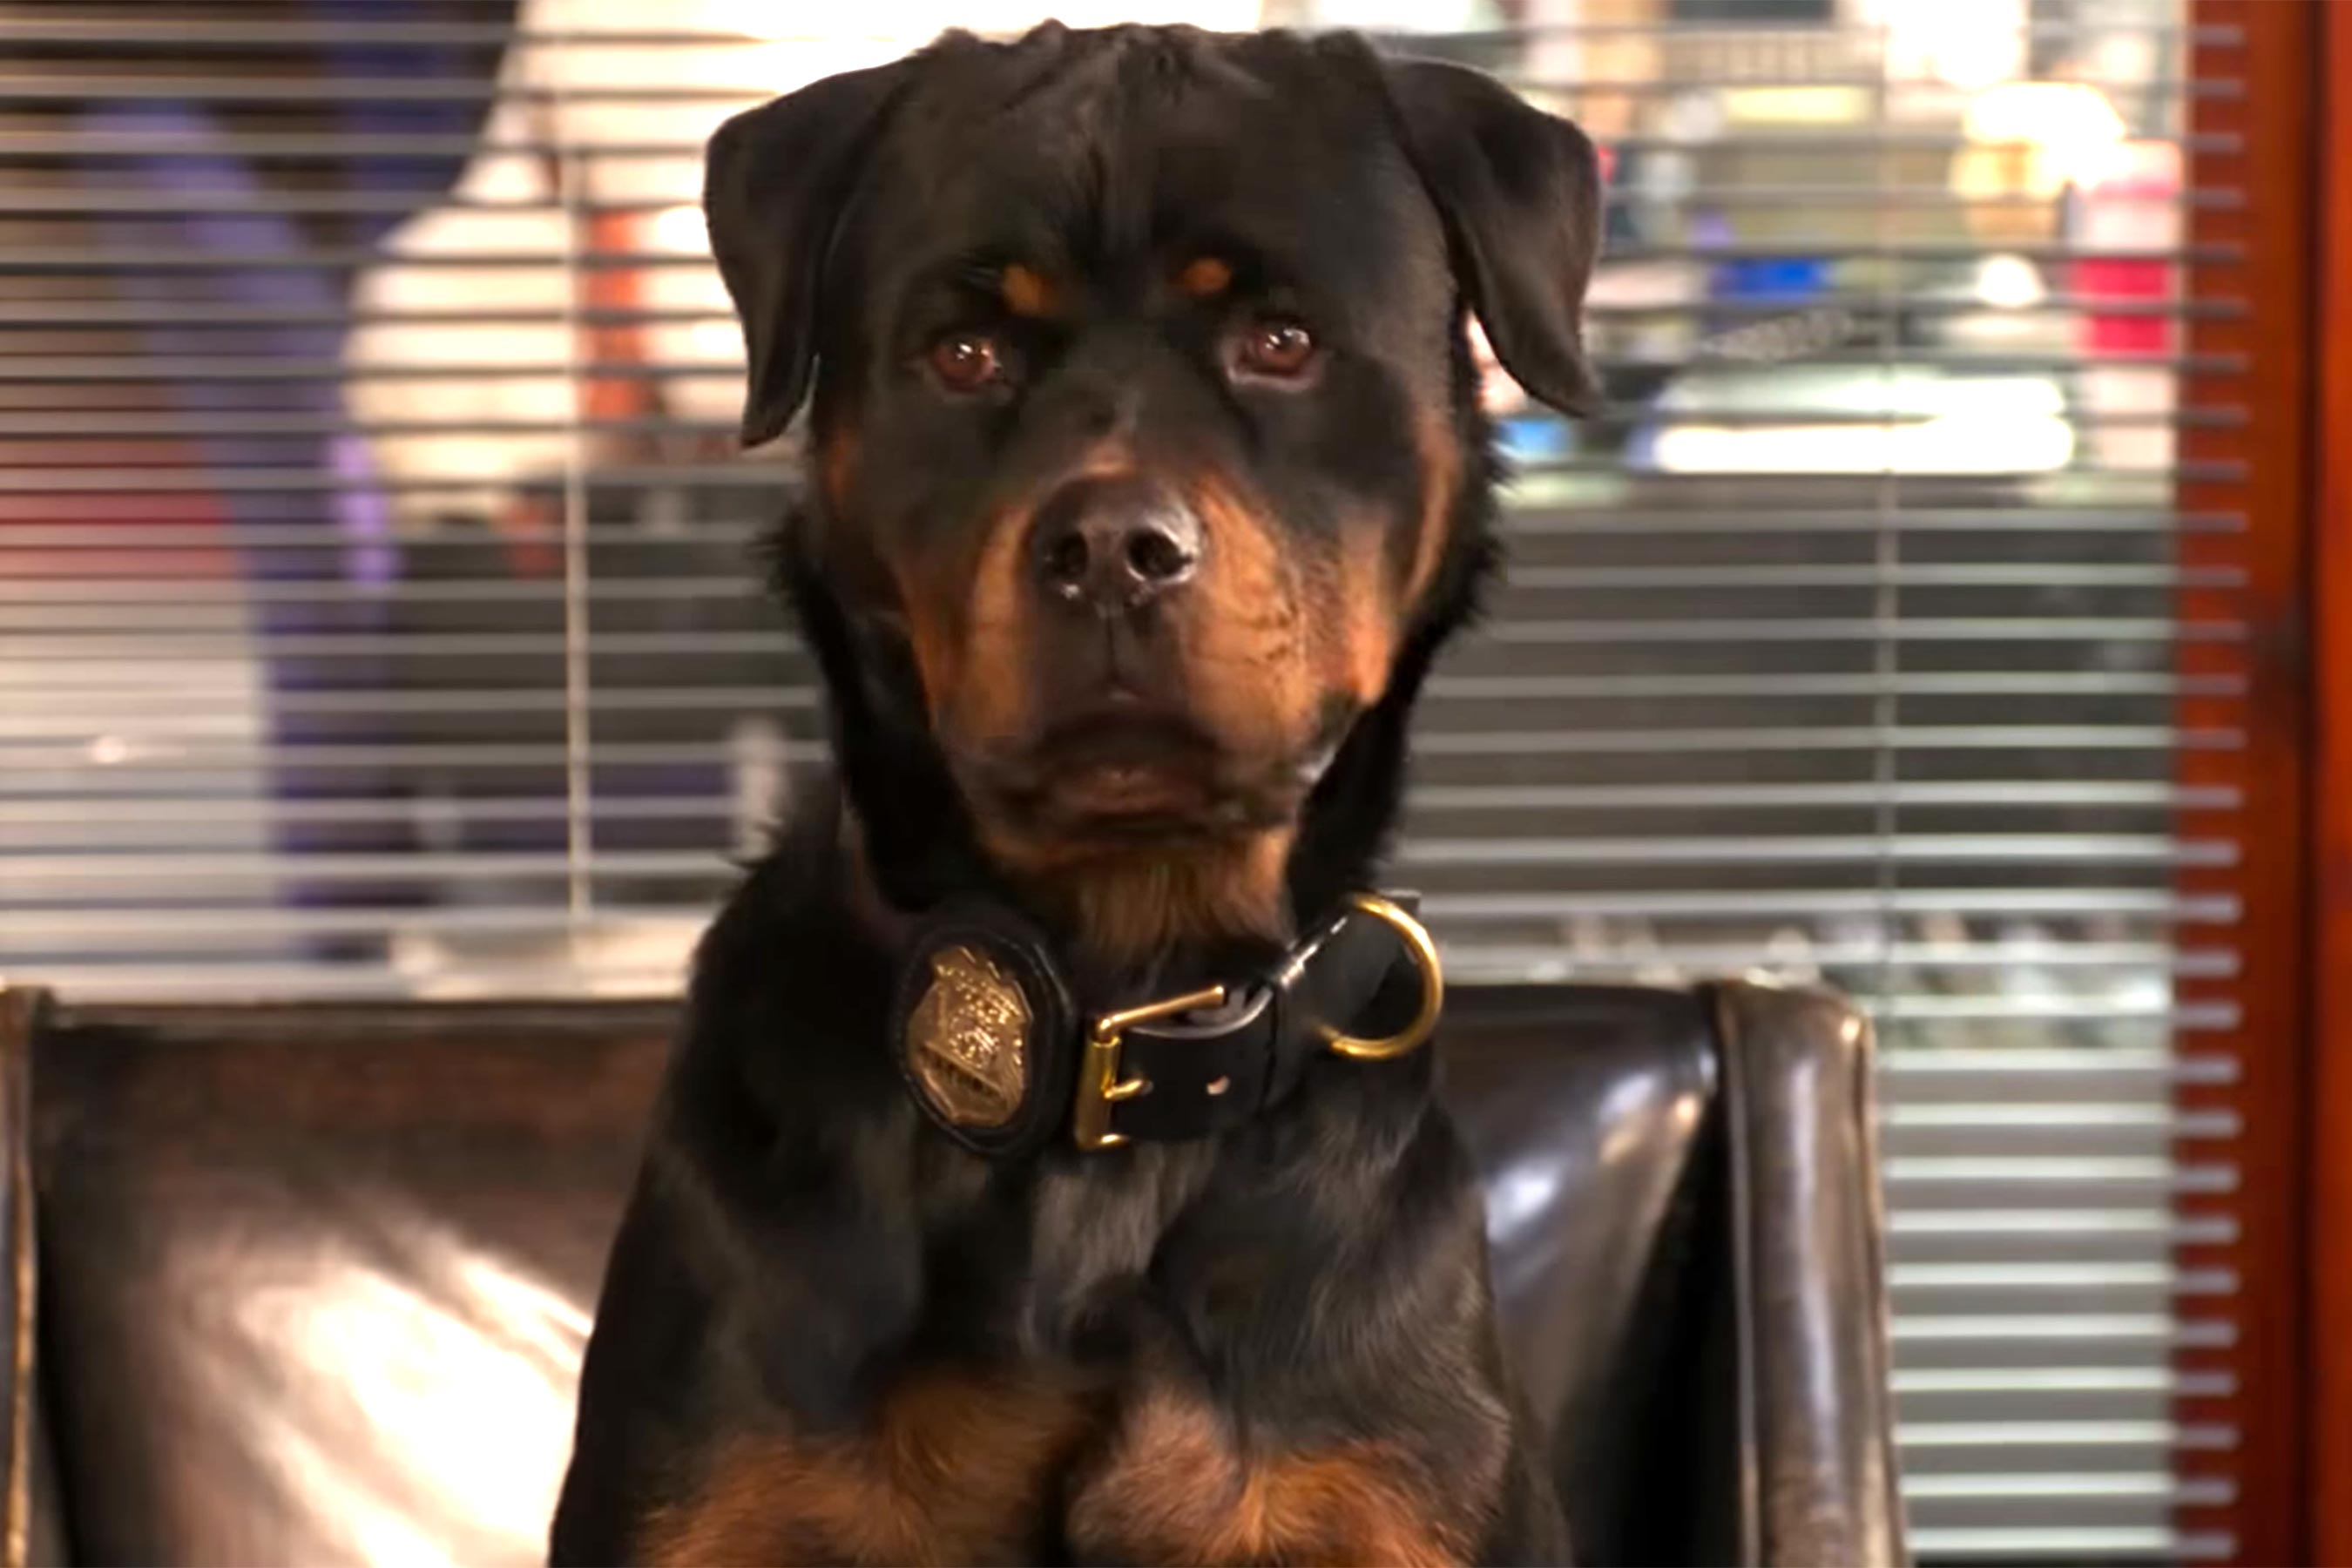 Show Dogs trailer: Watch Ludacris and Will Arnett